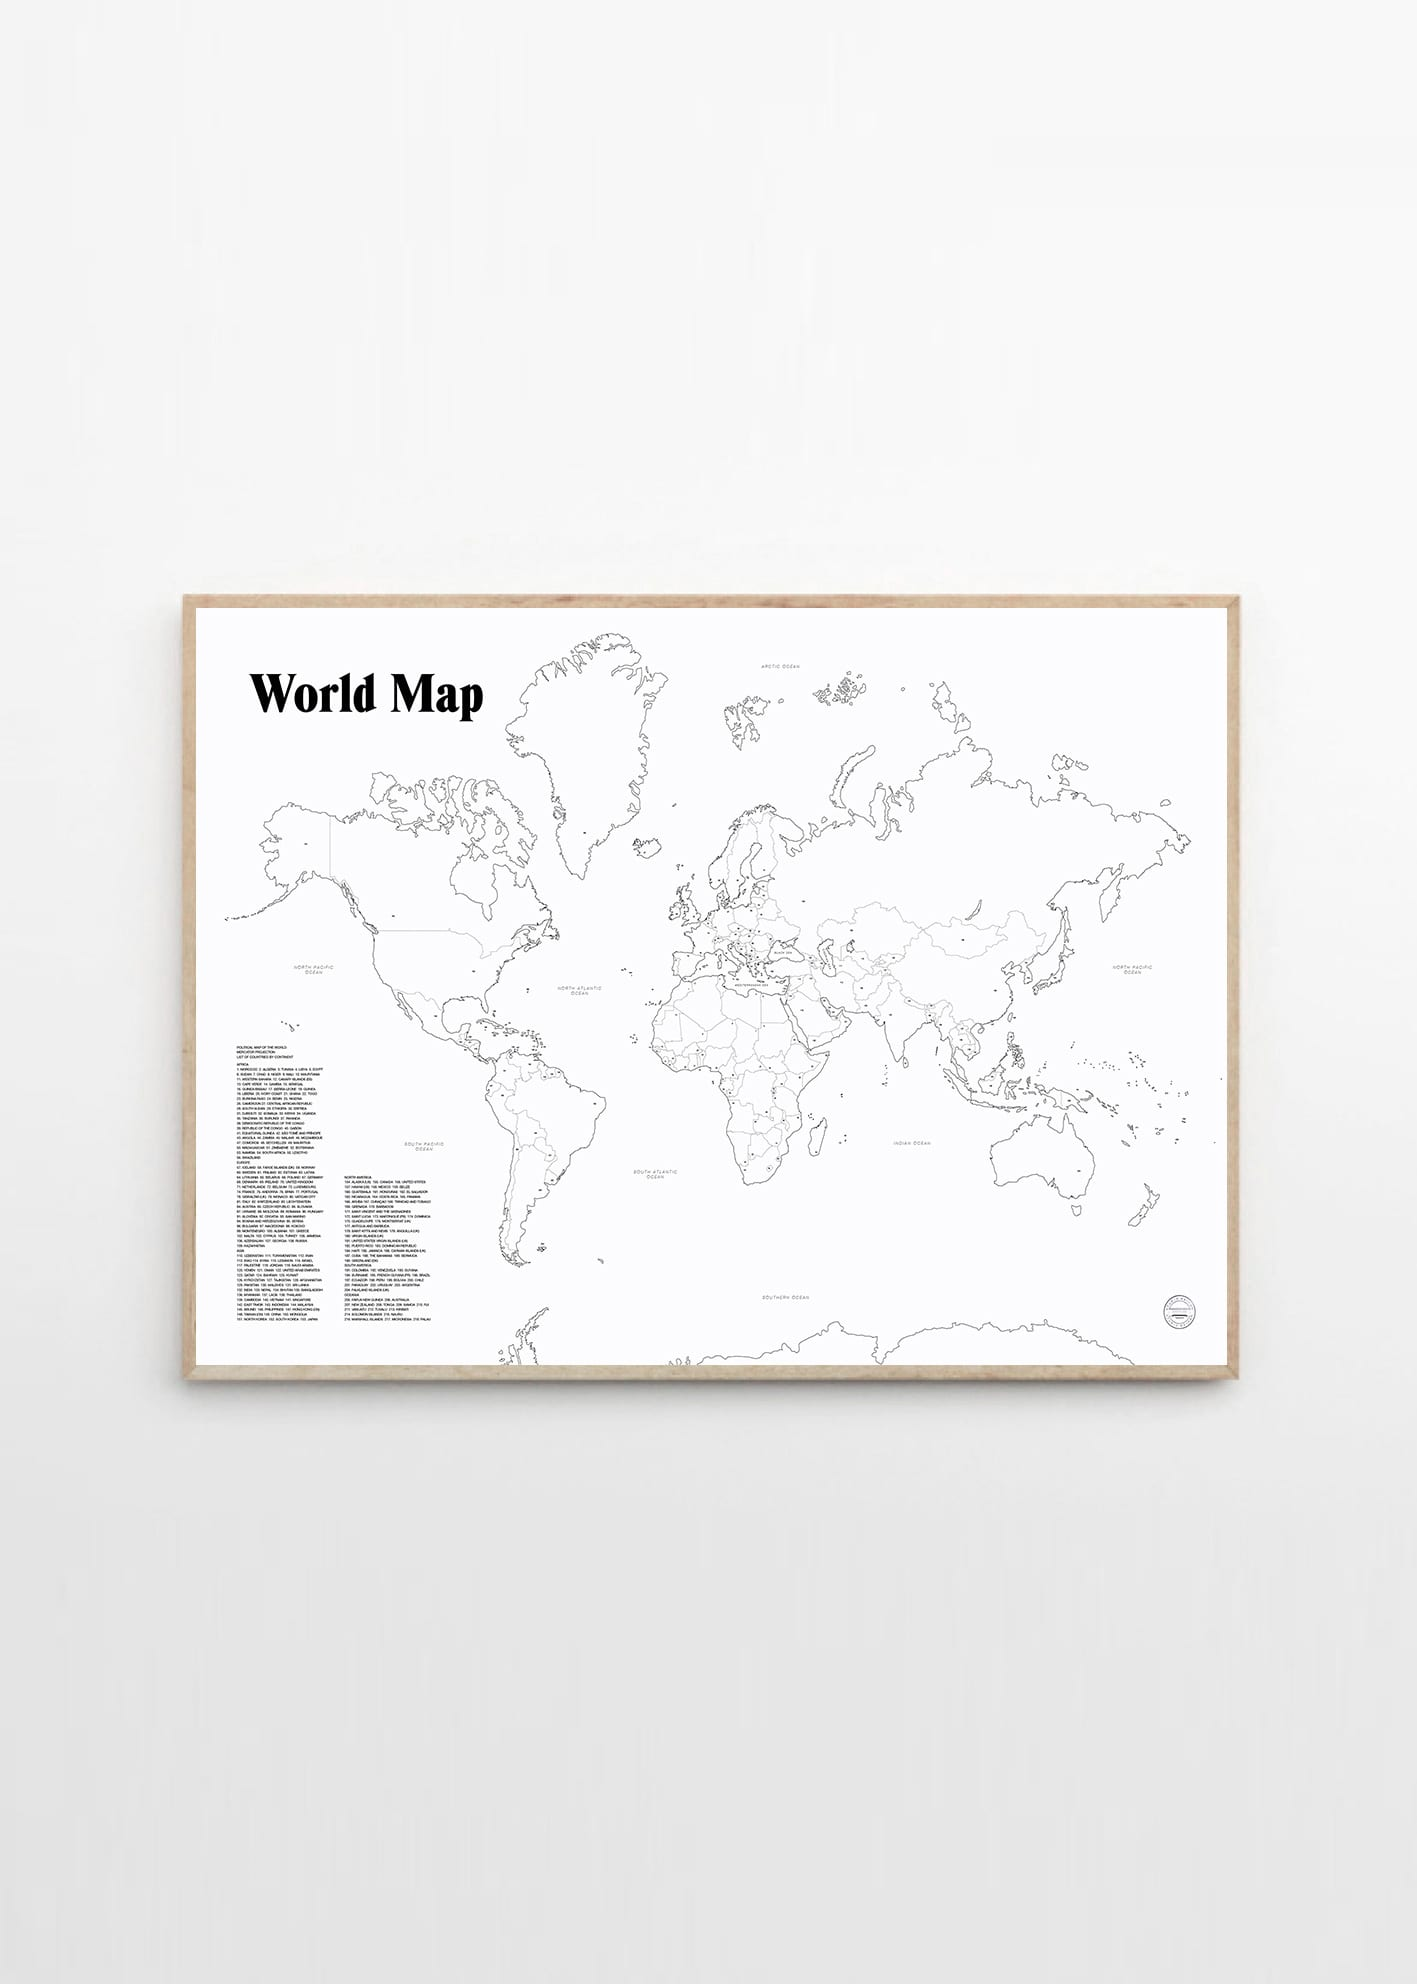 World map studio esinam world map gumiabroncs Choice Image